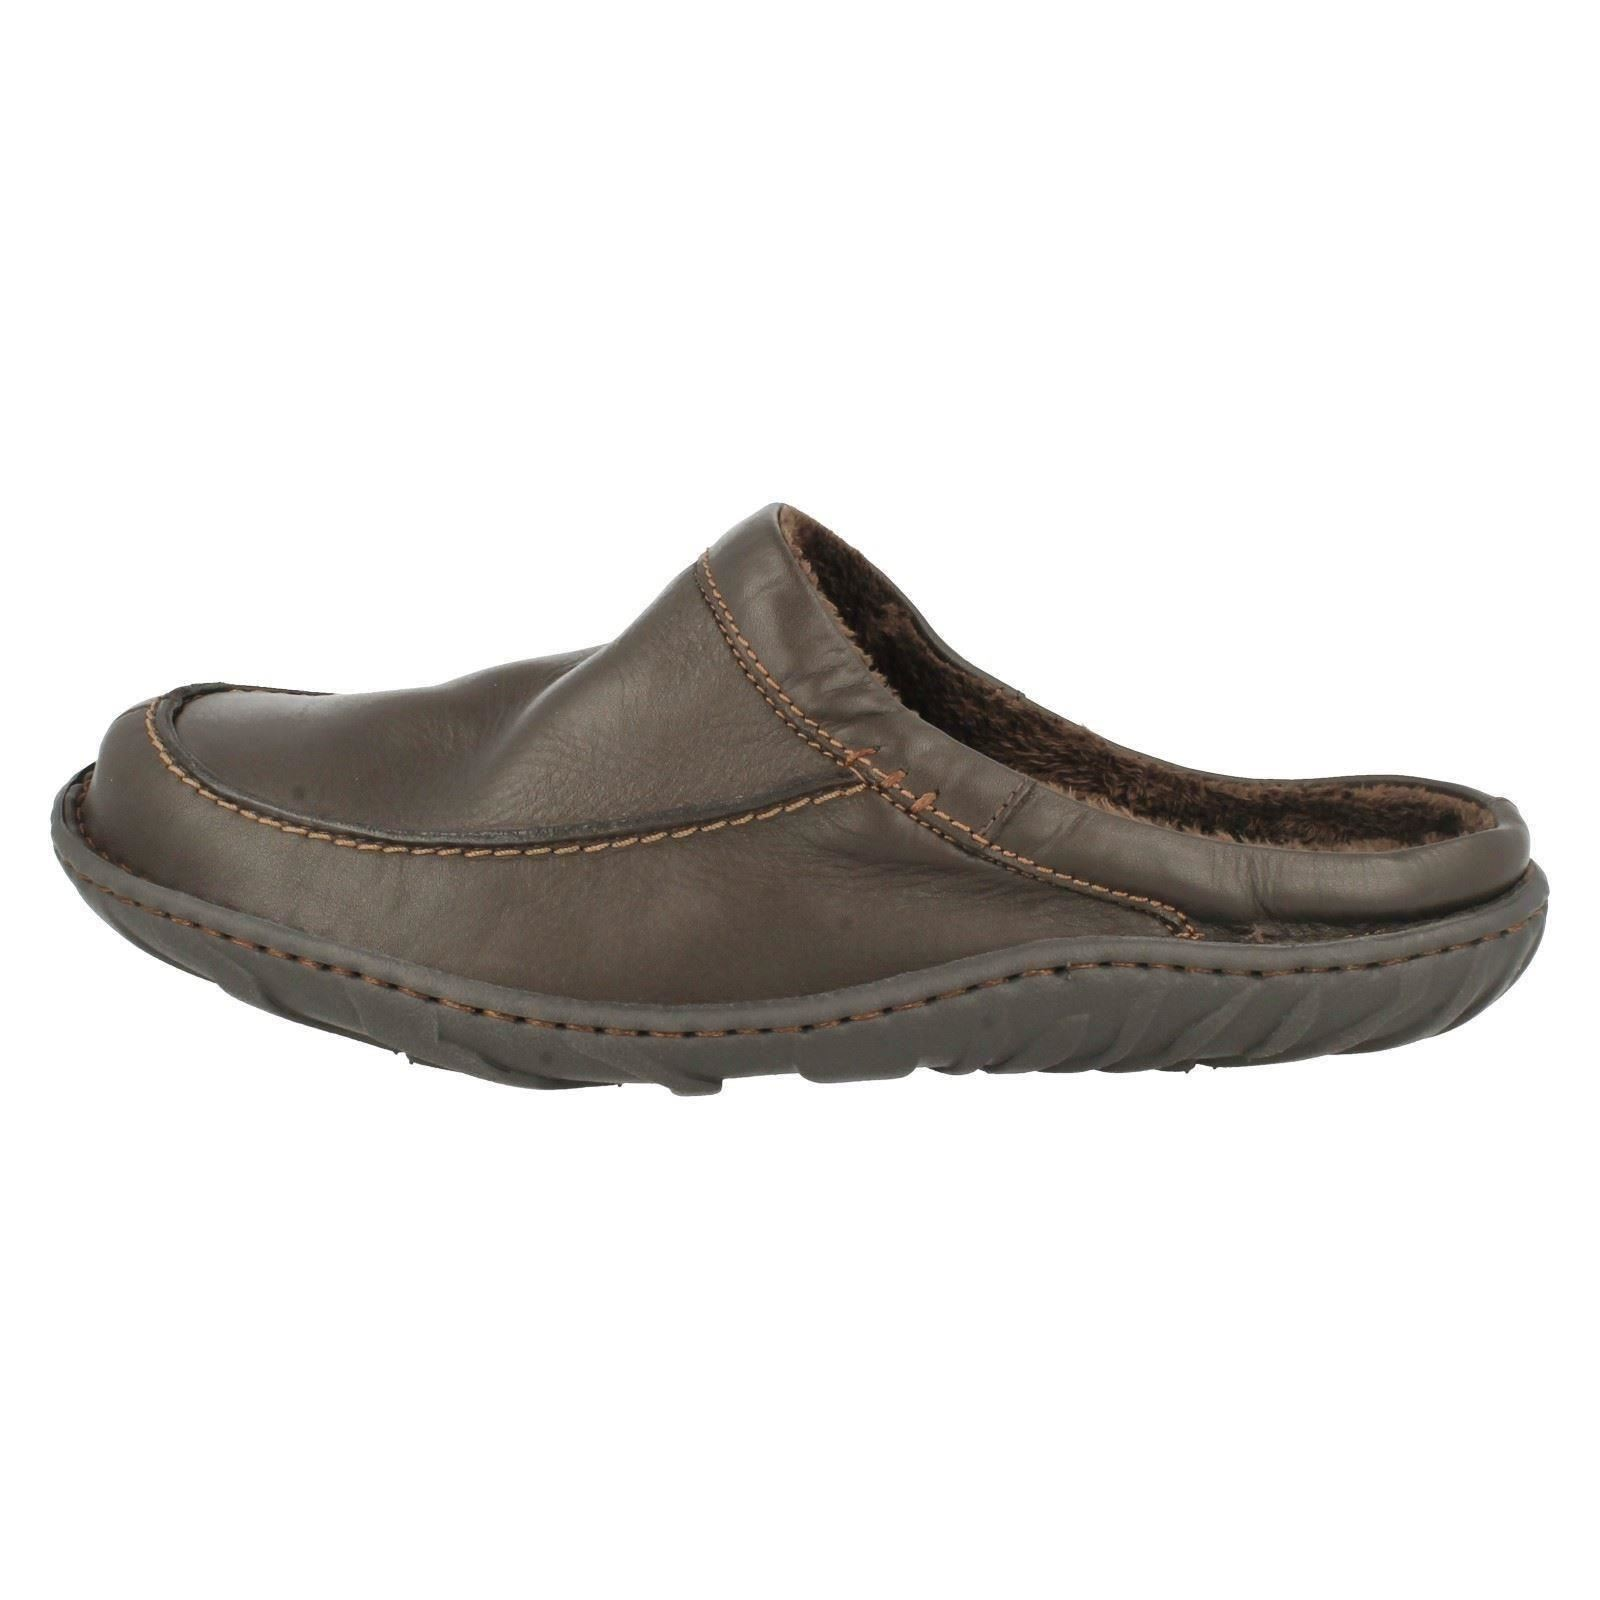 Mens Clarks Kite Vasa Leather Mule Slippers